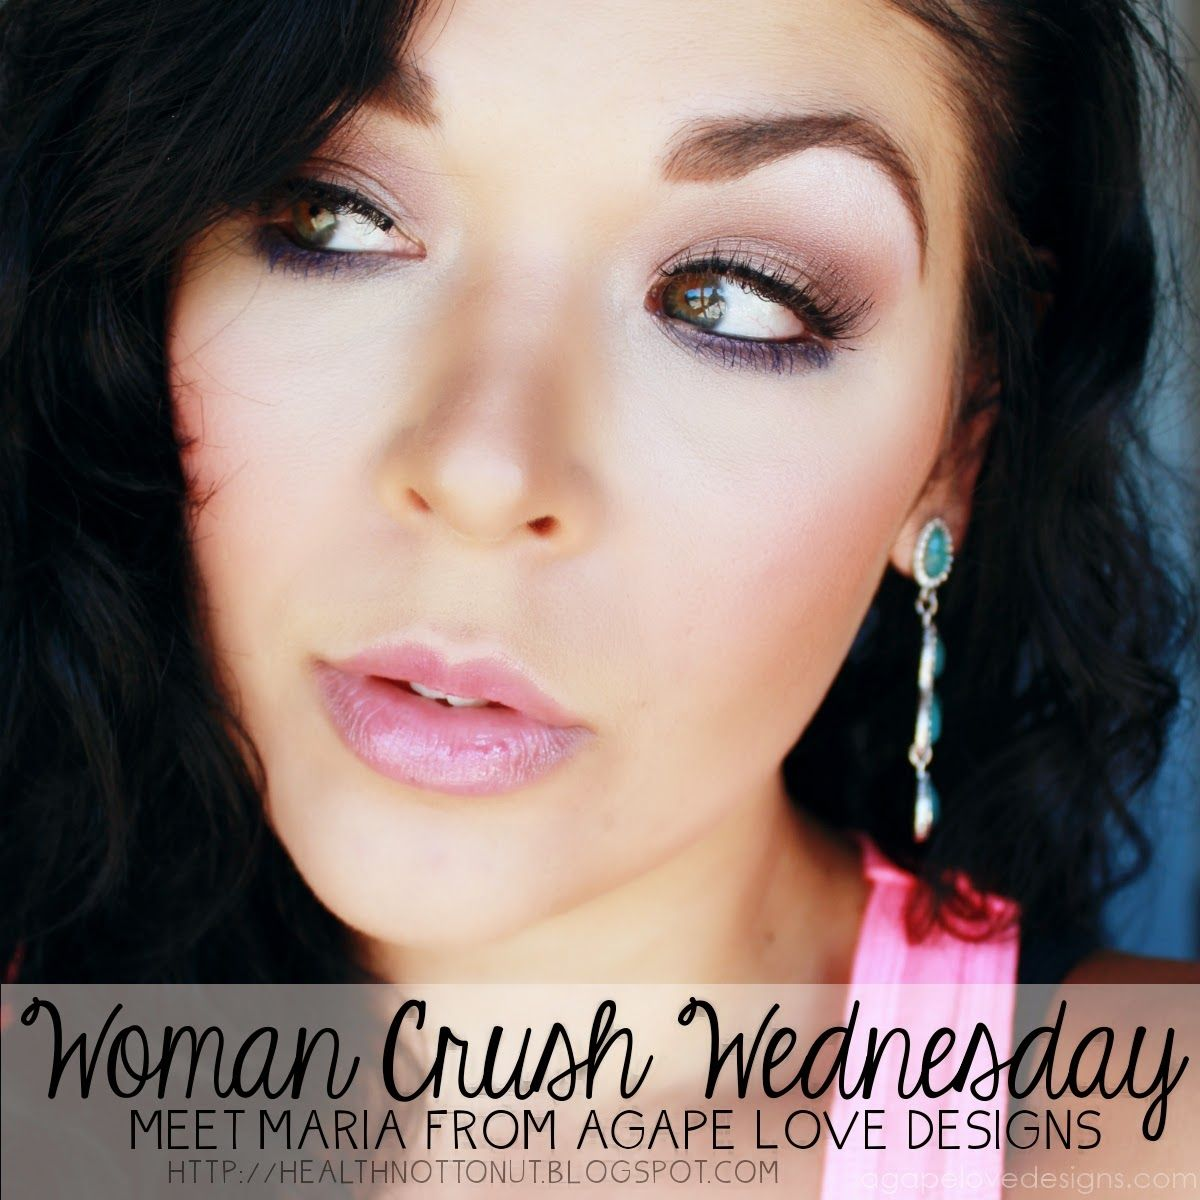 Sacagawea Famous Quotes: Woman Crush Wednesday: Agape Love Designs